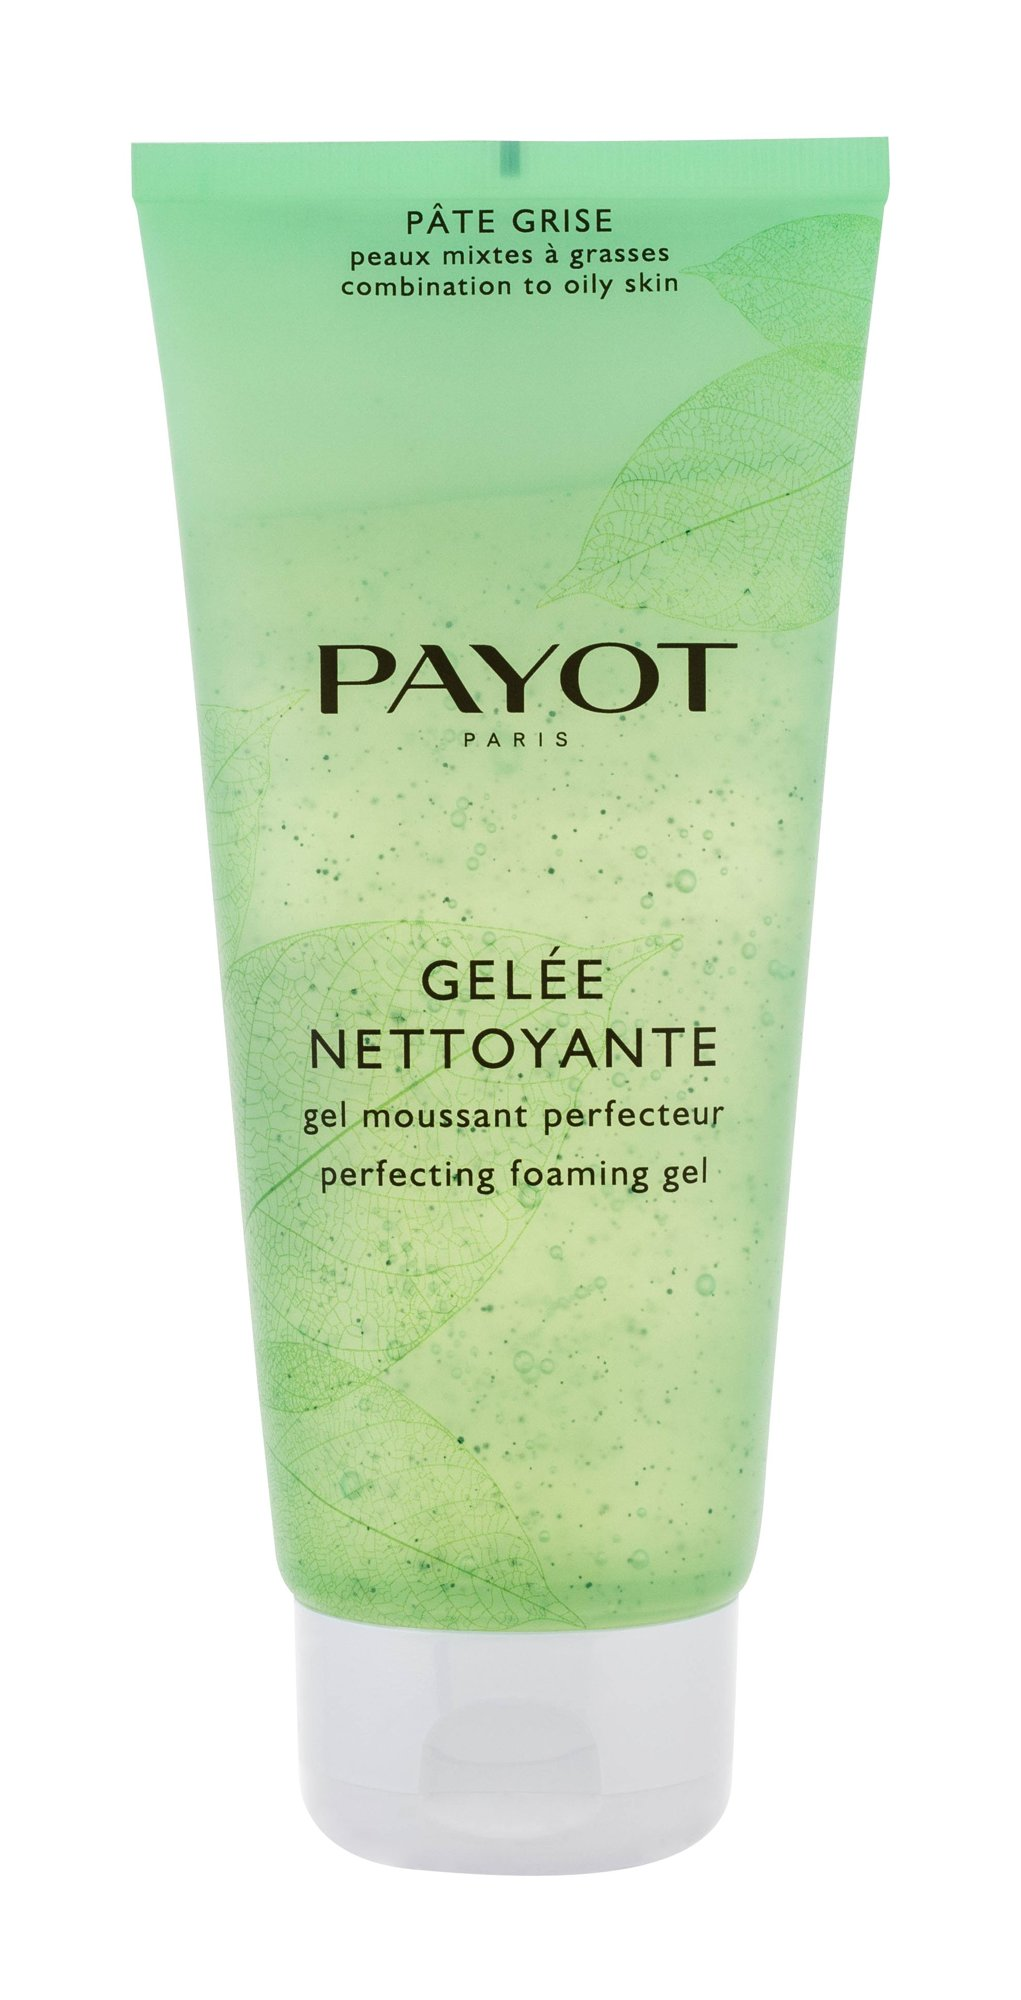 PAYOT Pate Grise Cleansing Gel 200ml